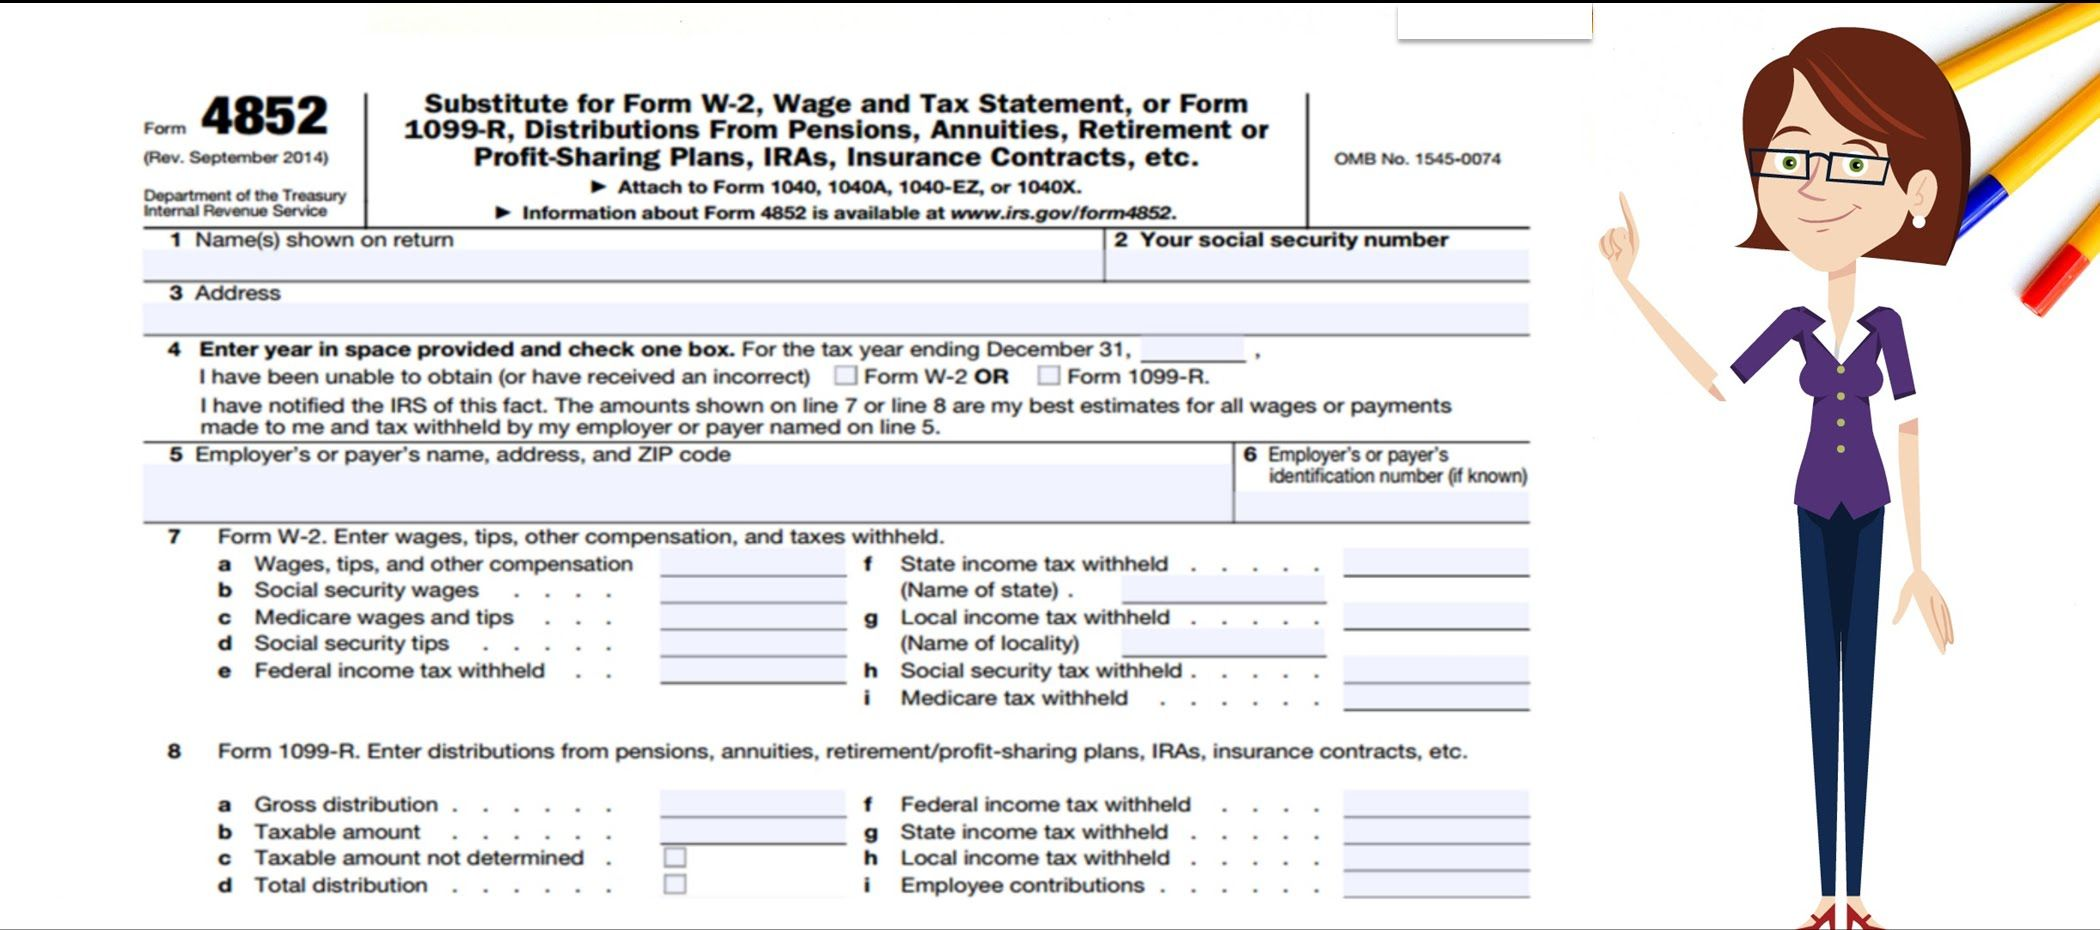 Irs What To Do If Form W 2 And Form 1099 R Is Not Received Or Is